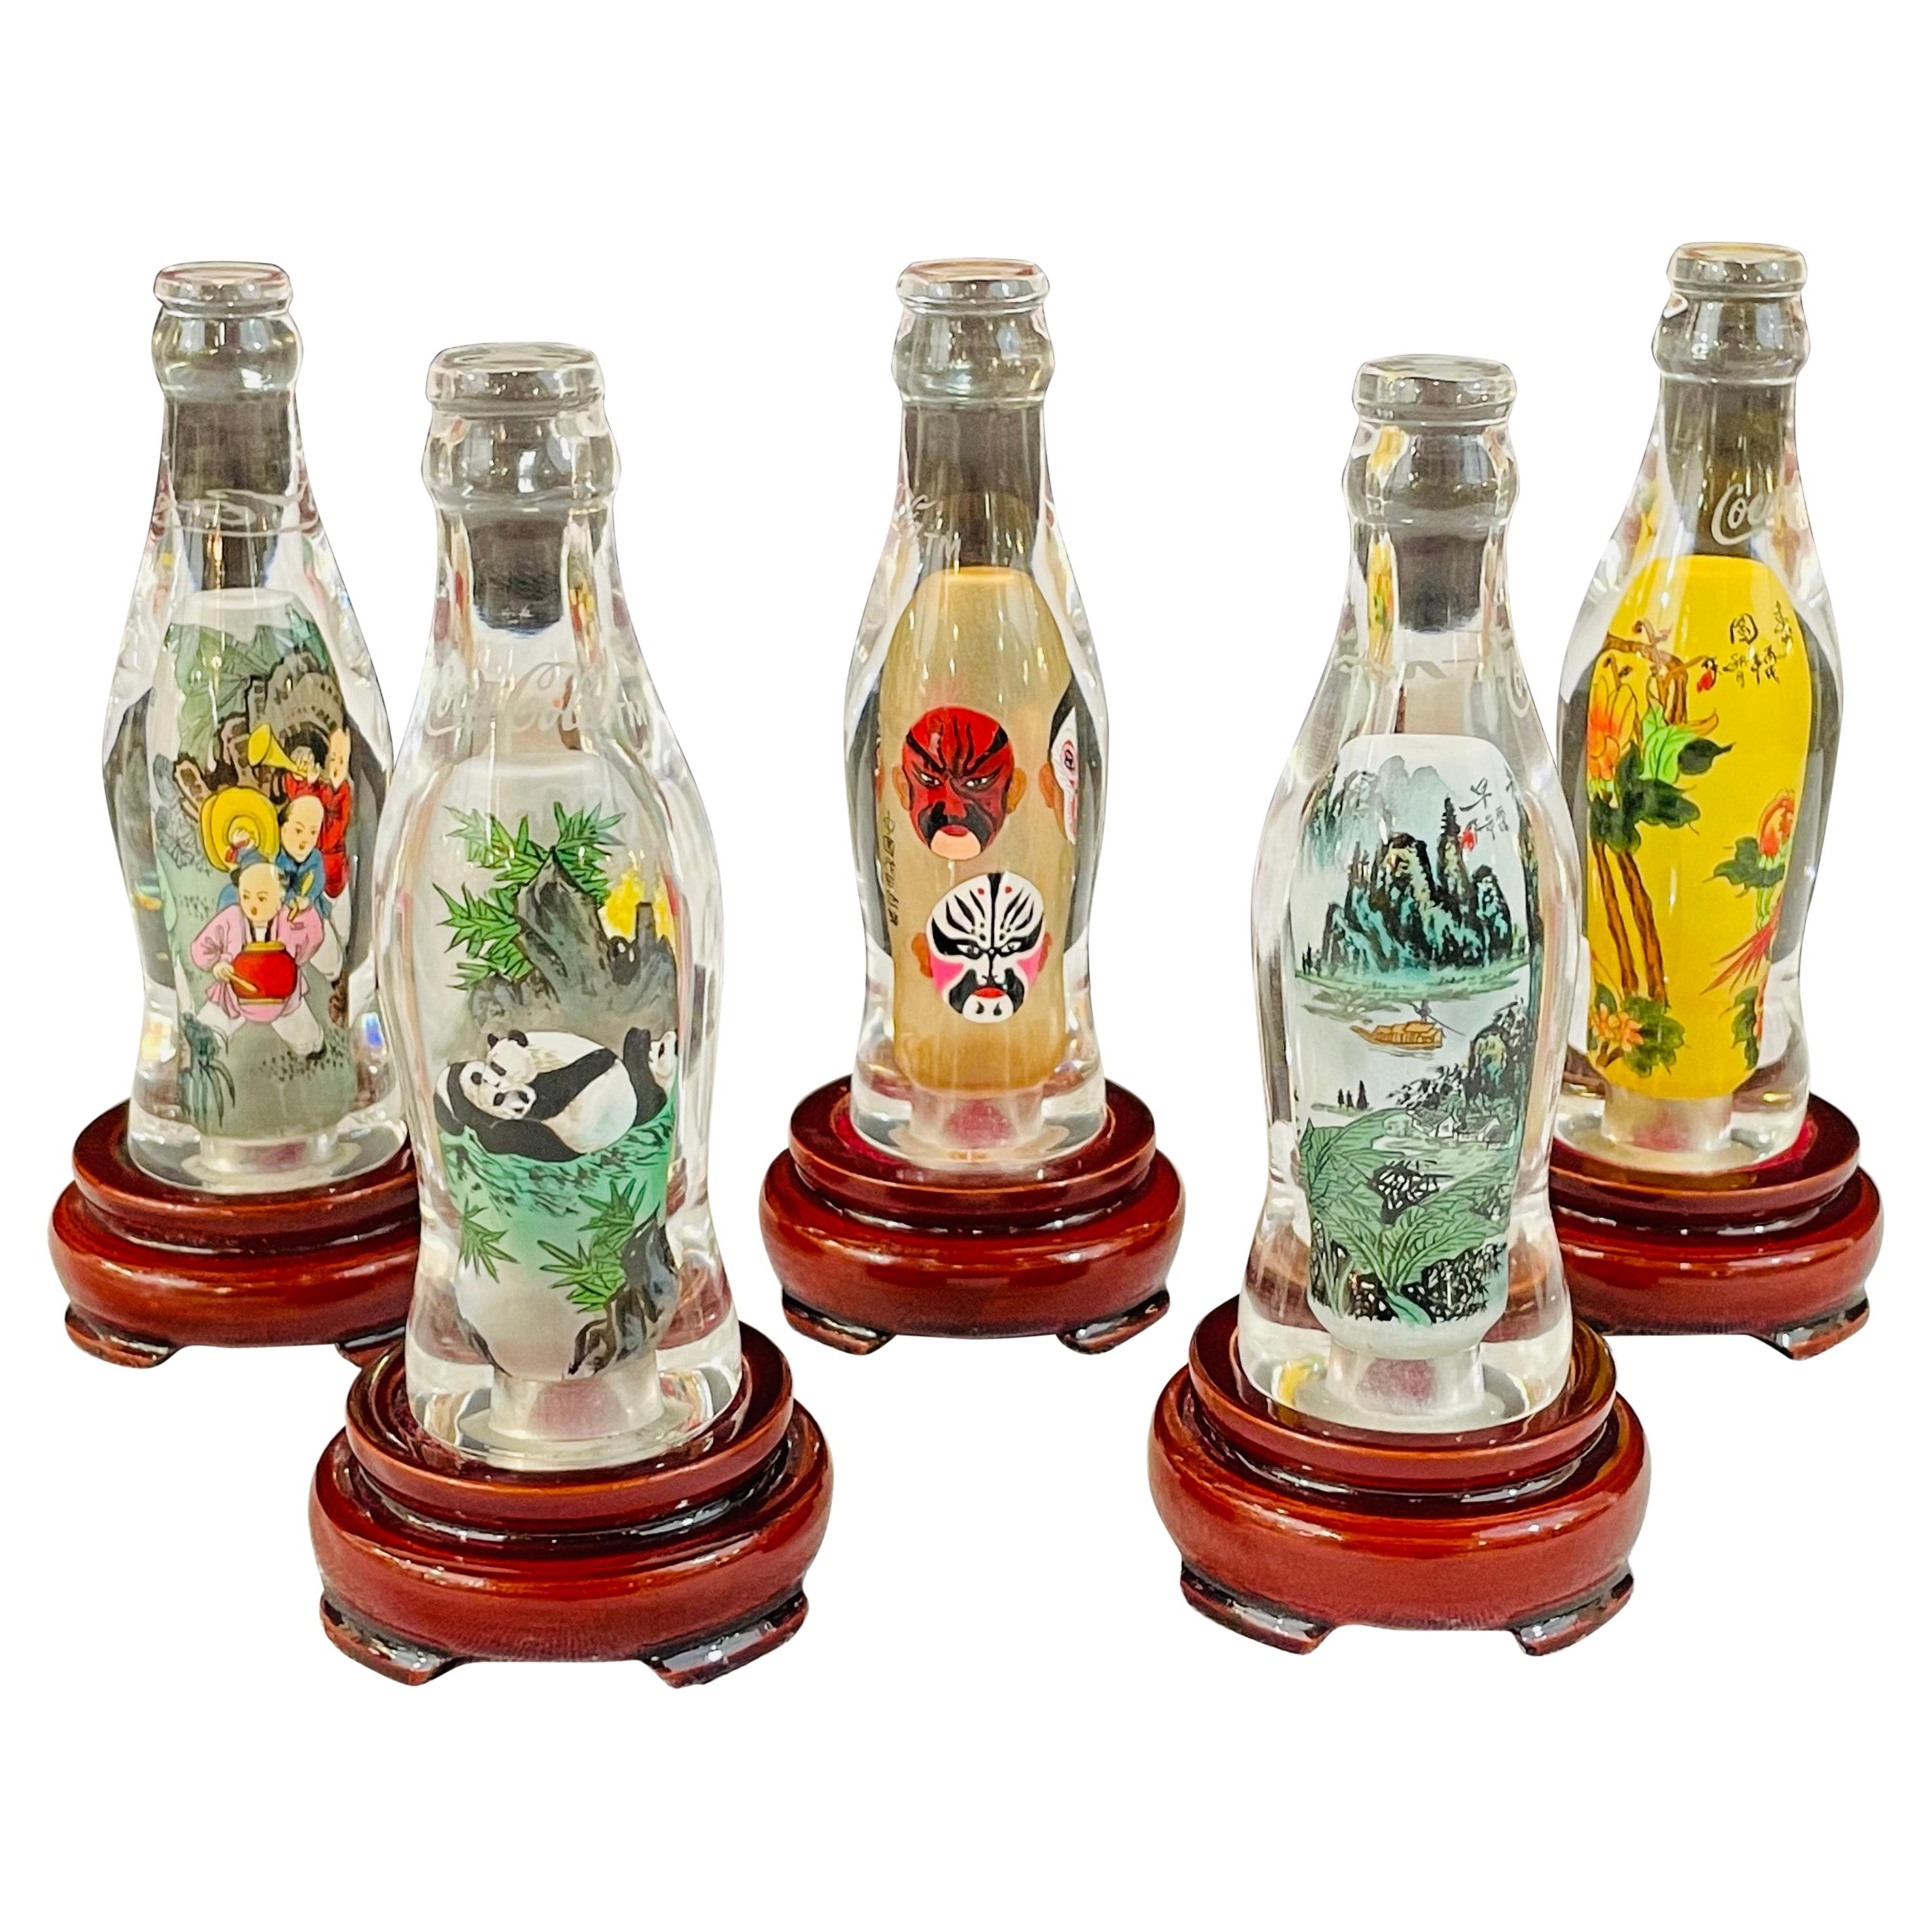 Collectible Coca-Cola Special Edition Asian Chinese Bottles, a Set of 5